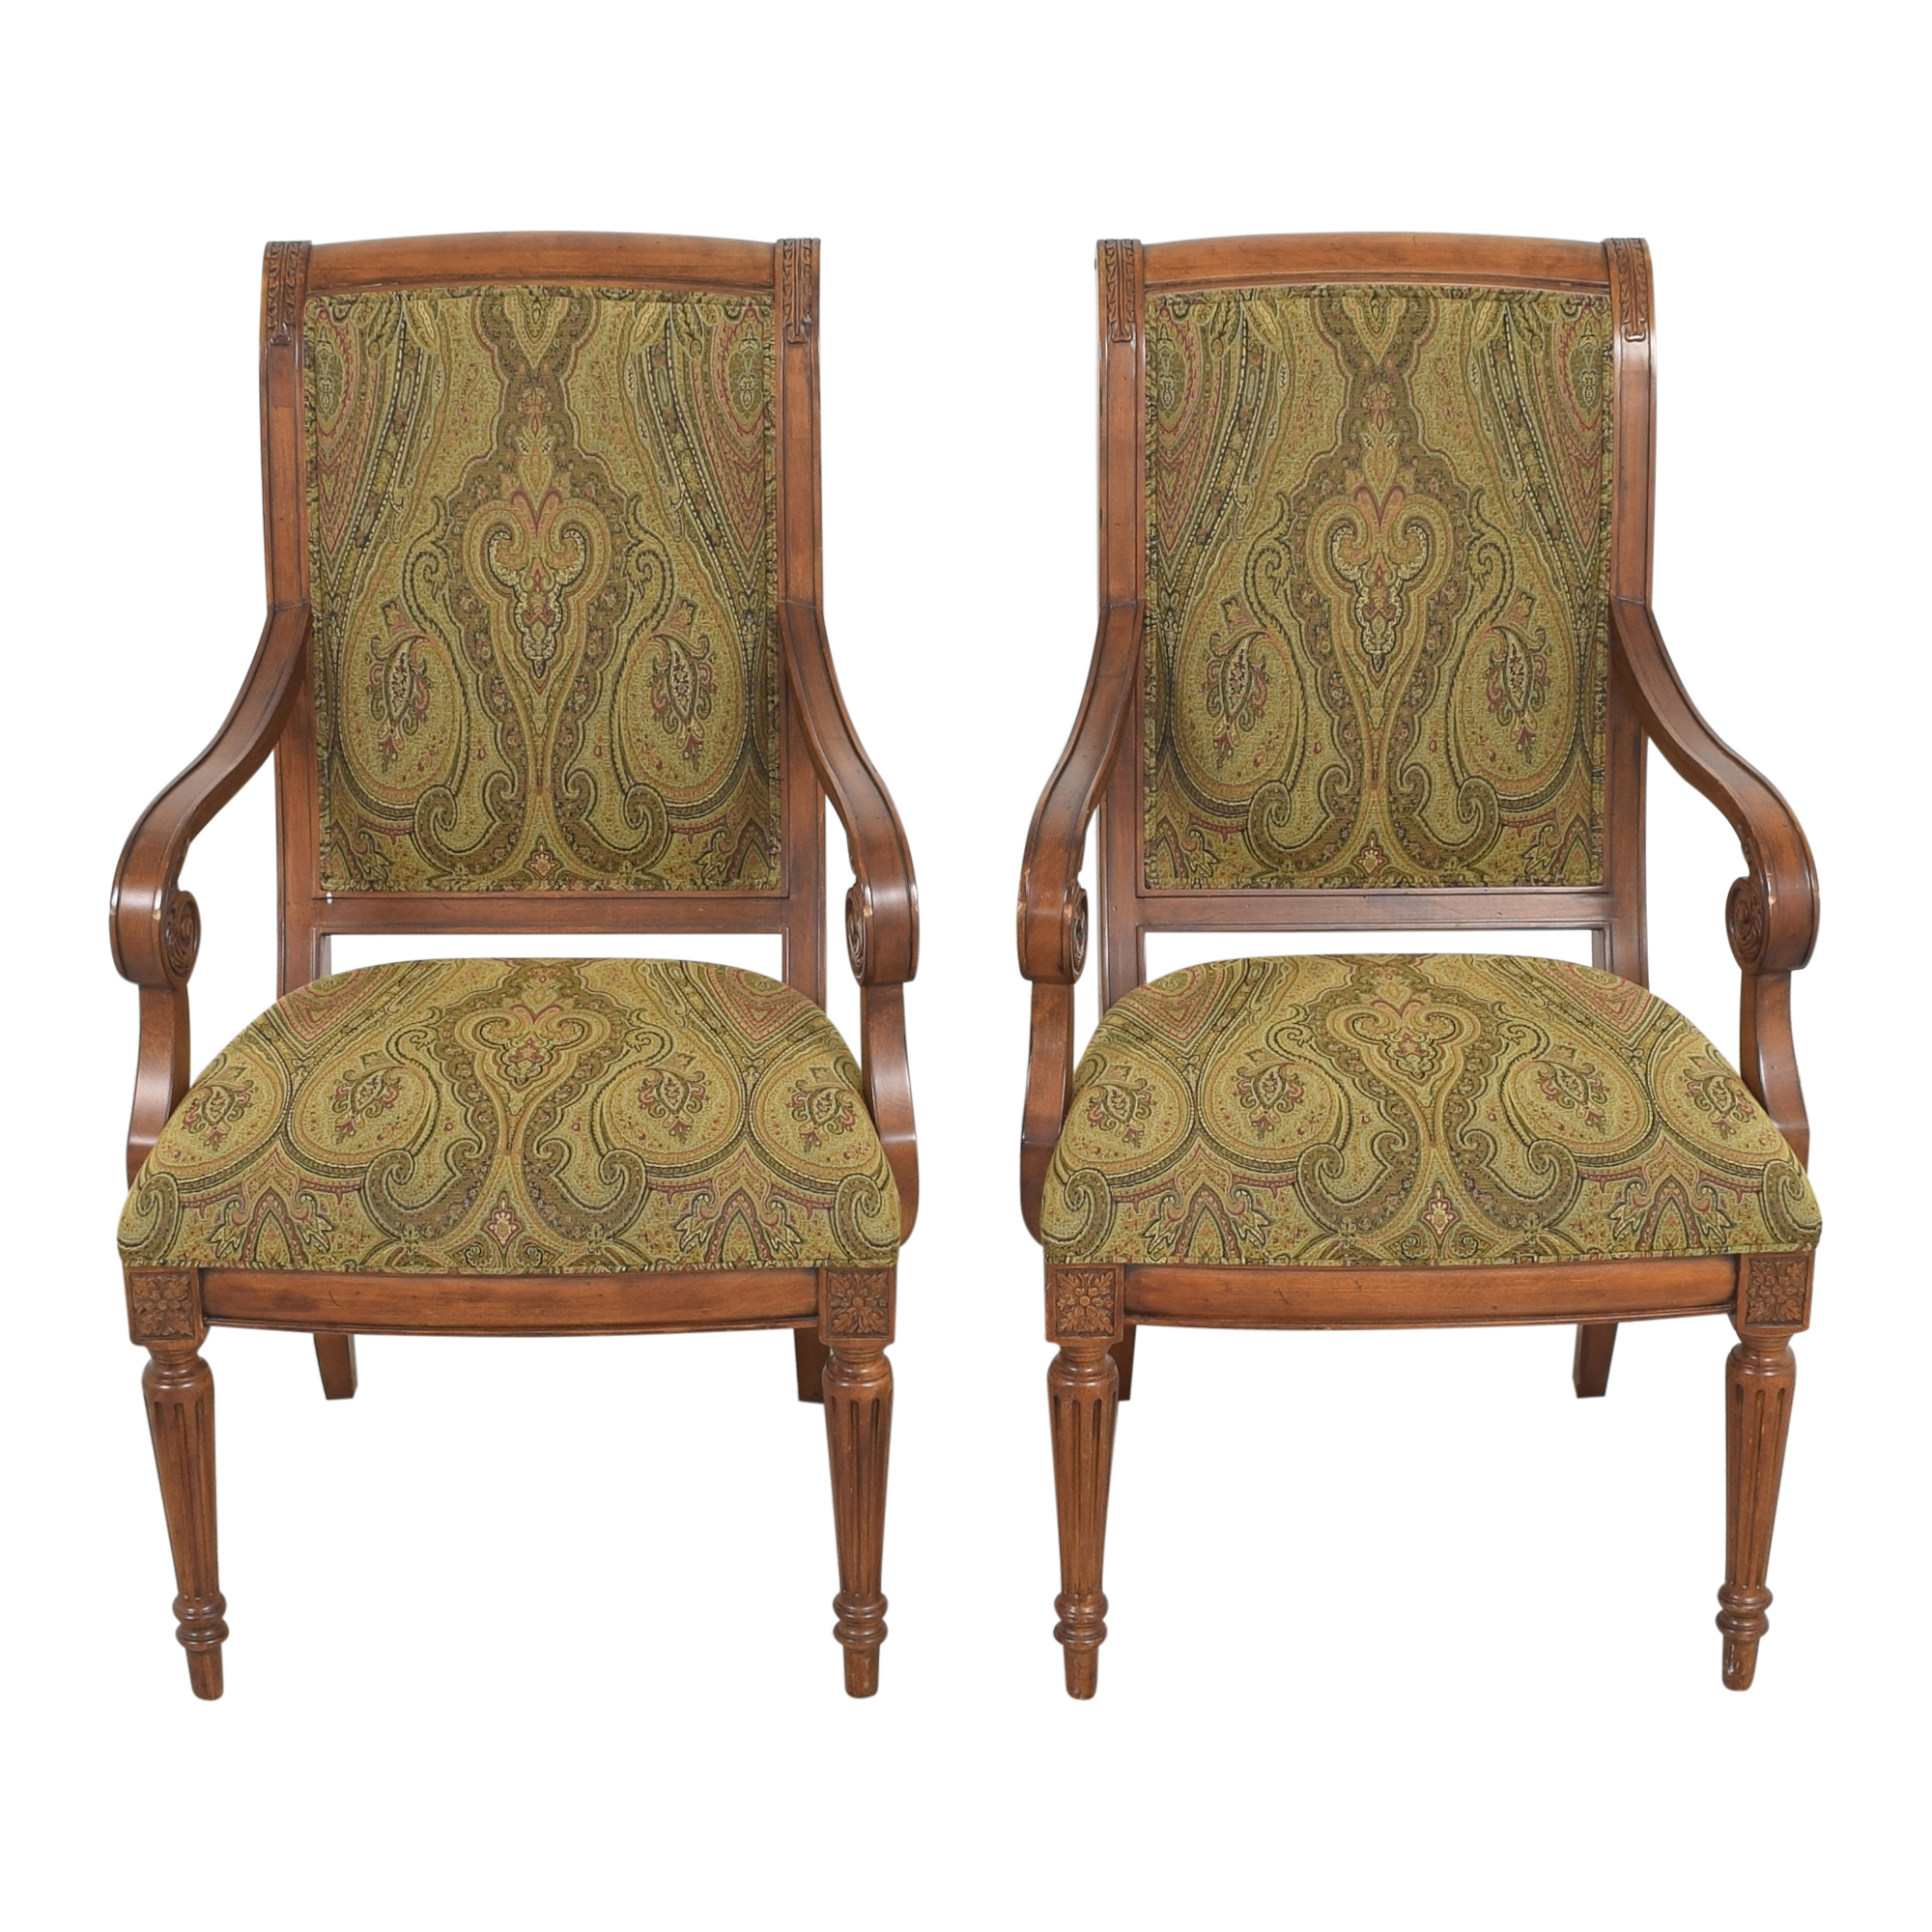 buy Ethan Allen Adison Dining Arm Chairs Ethan Allen Dining Chairs